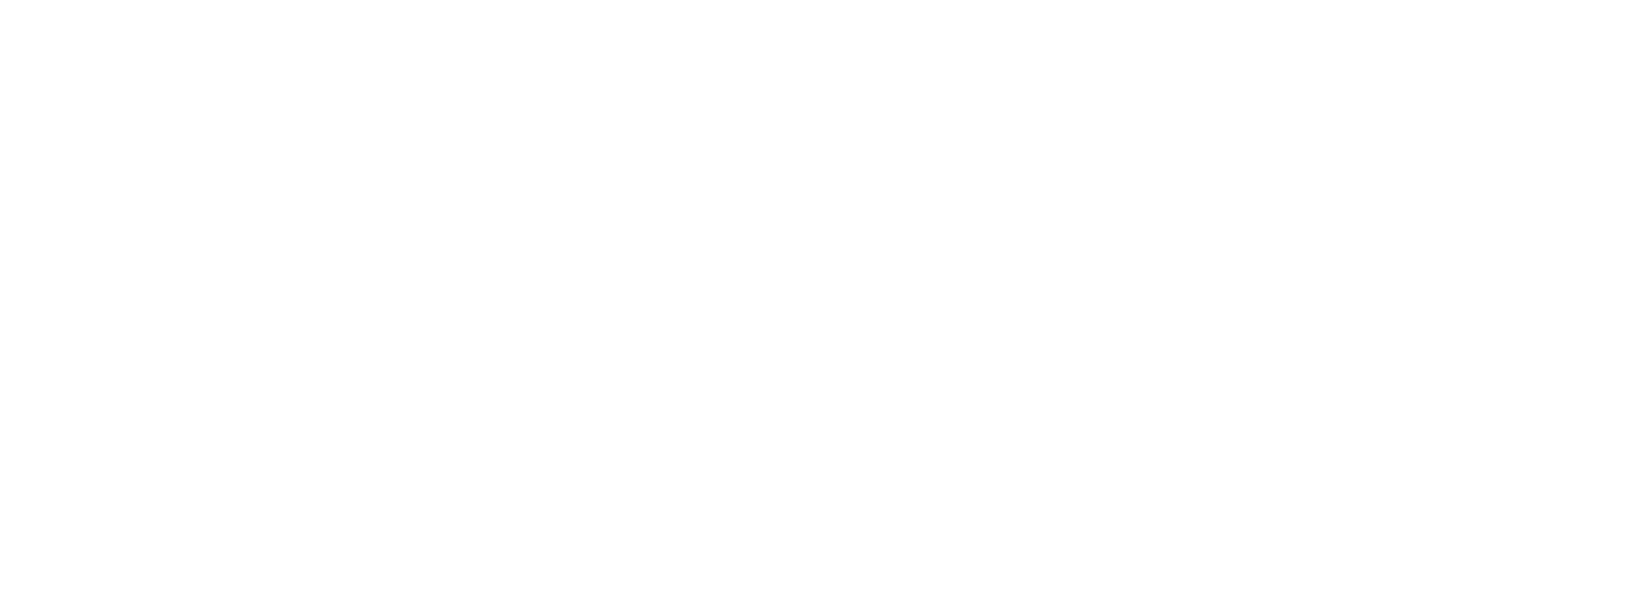 Buchprufer Consultants LLP